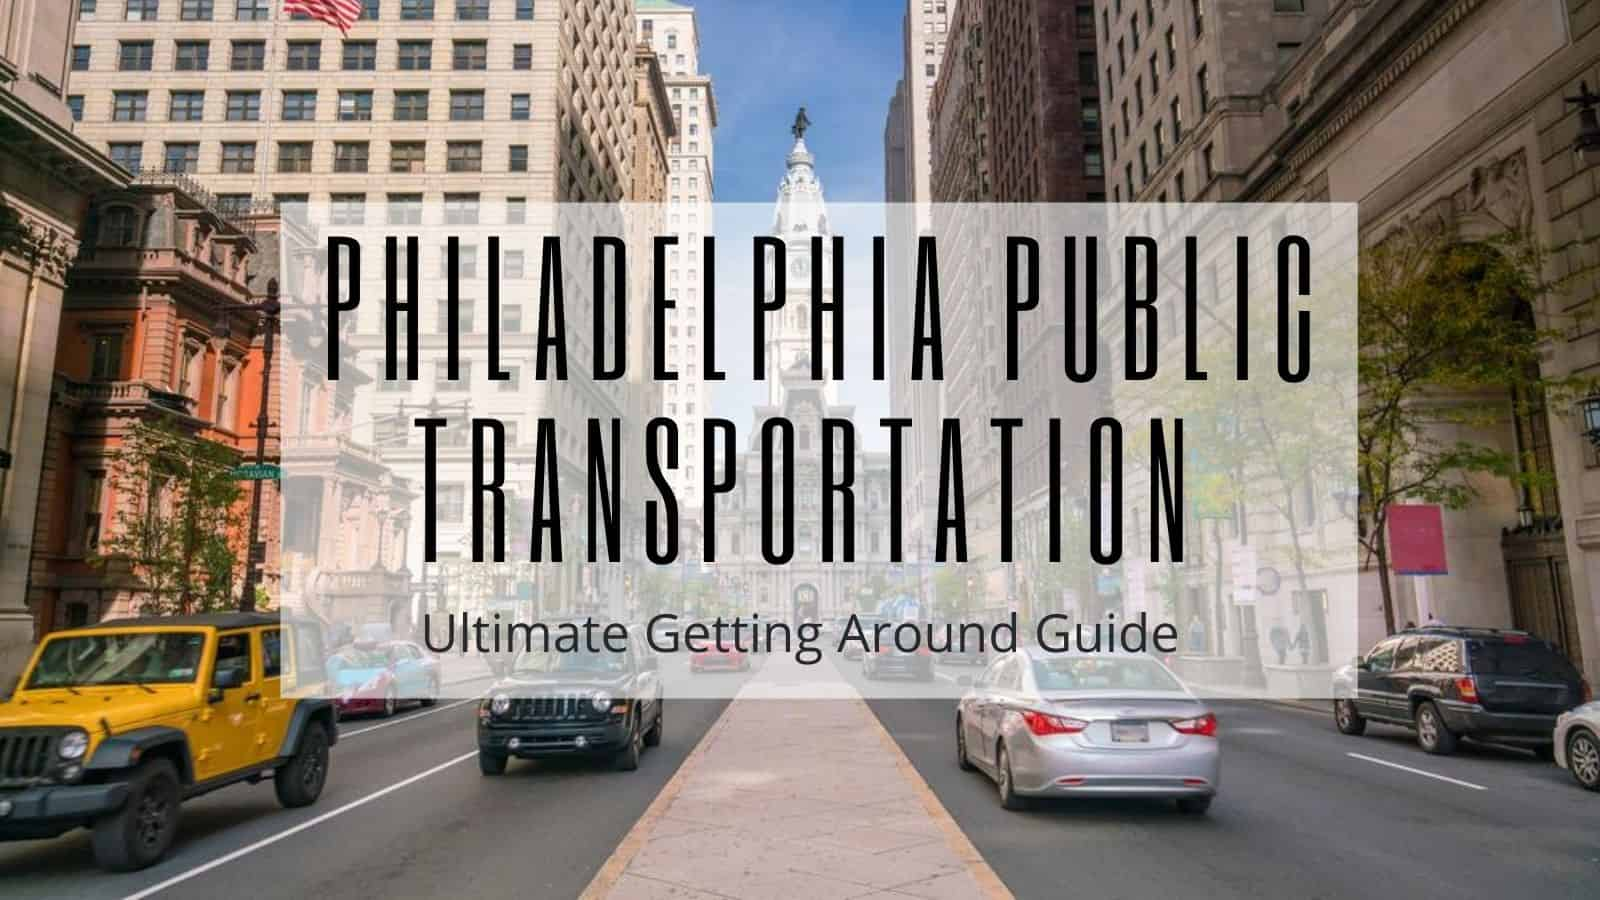 Philadelphia Public Transportation - Ultimate Getting Around Guide